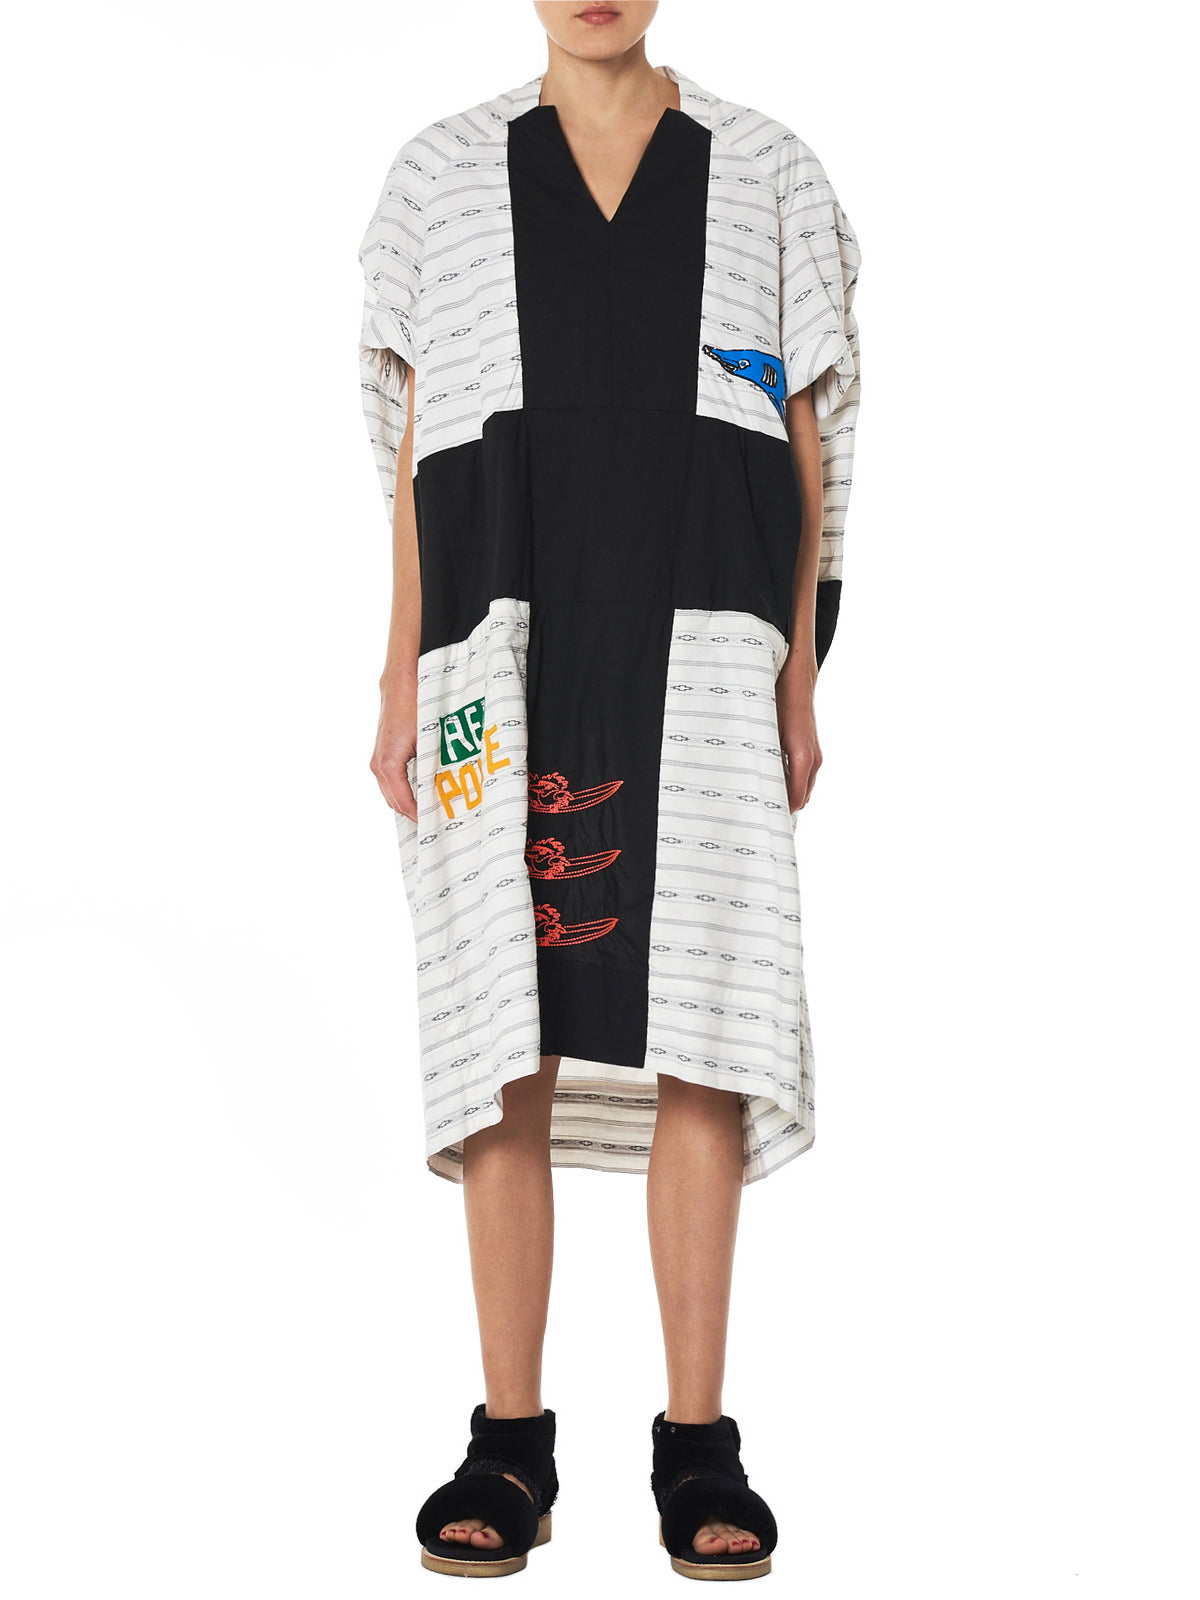 Bernhard Willhelm Graphic Dress - Hlorenzo Front